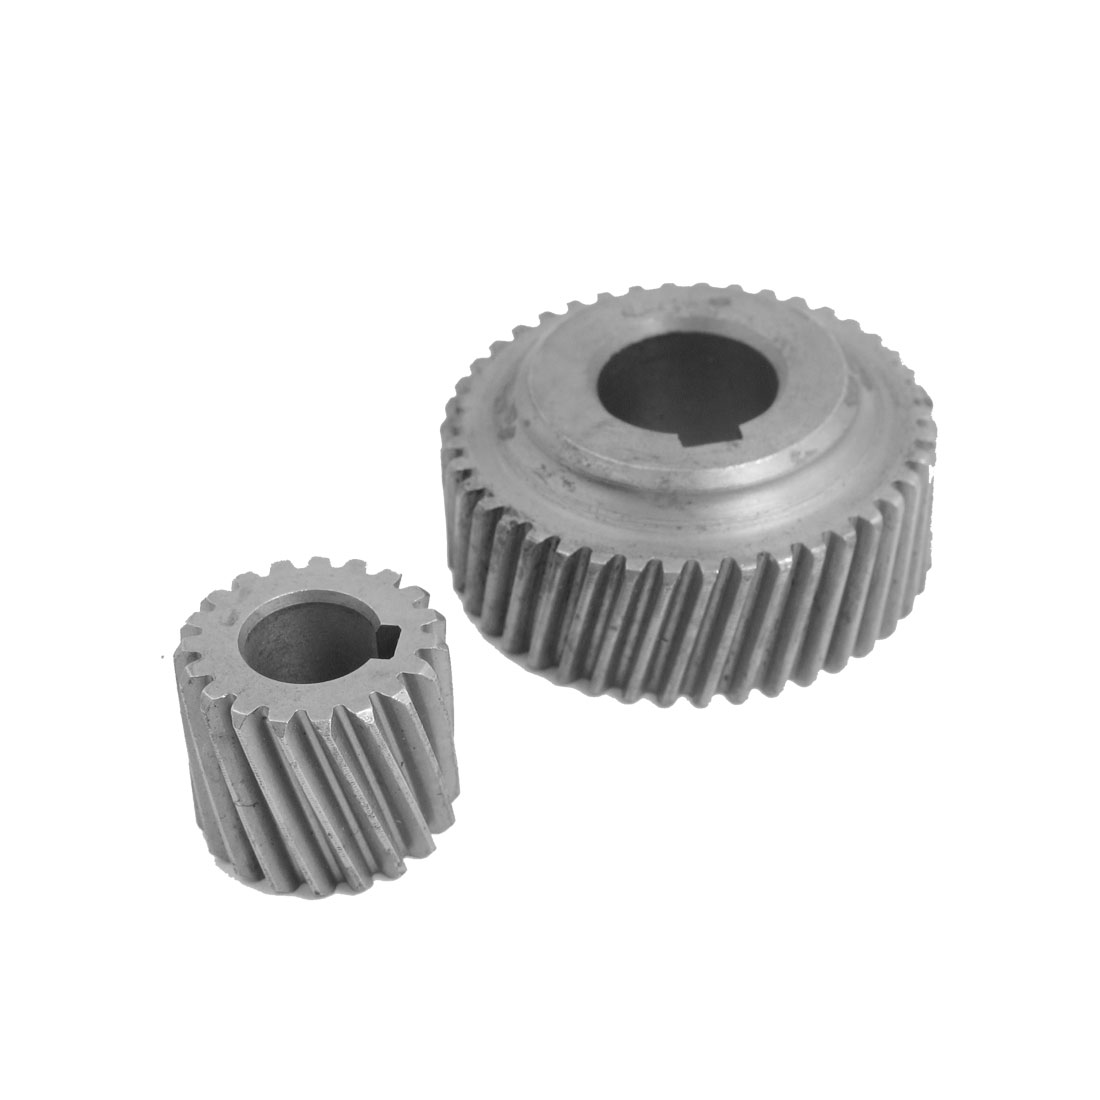 Replacement Metal Gear Wheel Set for Makita 4100 Marble Cutter